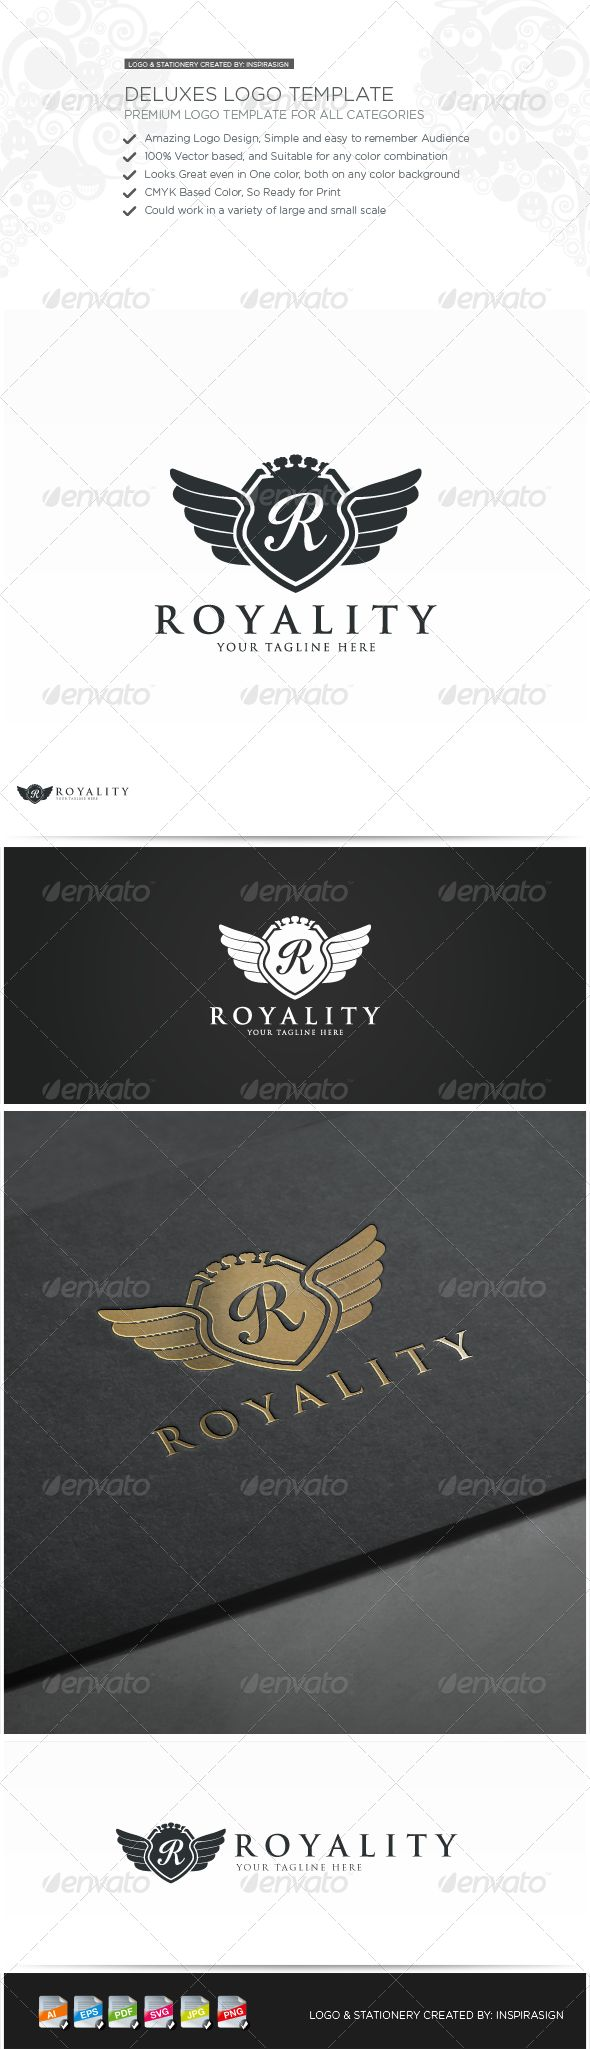 Royality - Premium Logo for all Categories  #GraphicRiver          This brand is suitable for every kind of All category business sector or personal logo.Name, color…etc changes can be done according to your desire.  INCLUDED IN THE MAIN FILE  10 LOGO VARIATIONS  Ai (Adobe illustrator)  EPS (Encapsulated PostScript)  PSD (Photoshop)  PDF  SVG (Scalable Vector Graphics)  PNG (Transparent Background with Different Sizes)  JPG All Files is based Vector, you can edit color and font on Ai (Adobe…